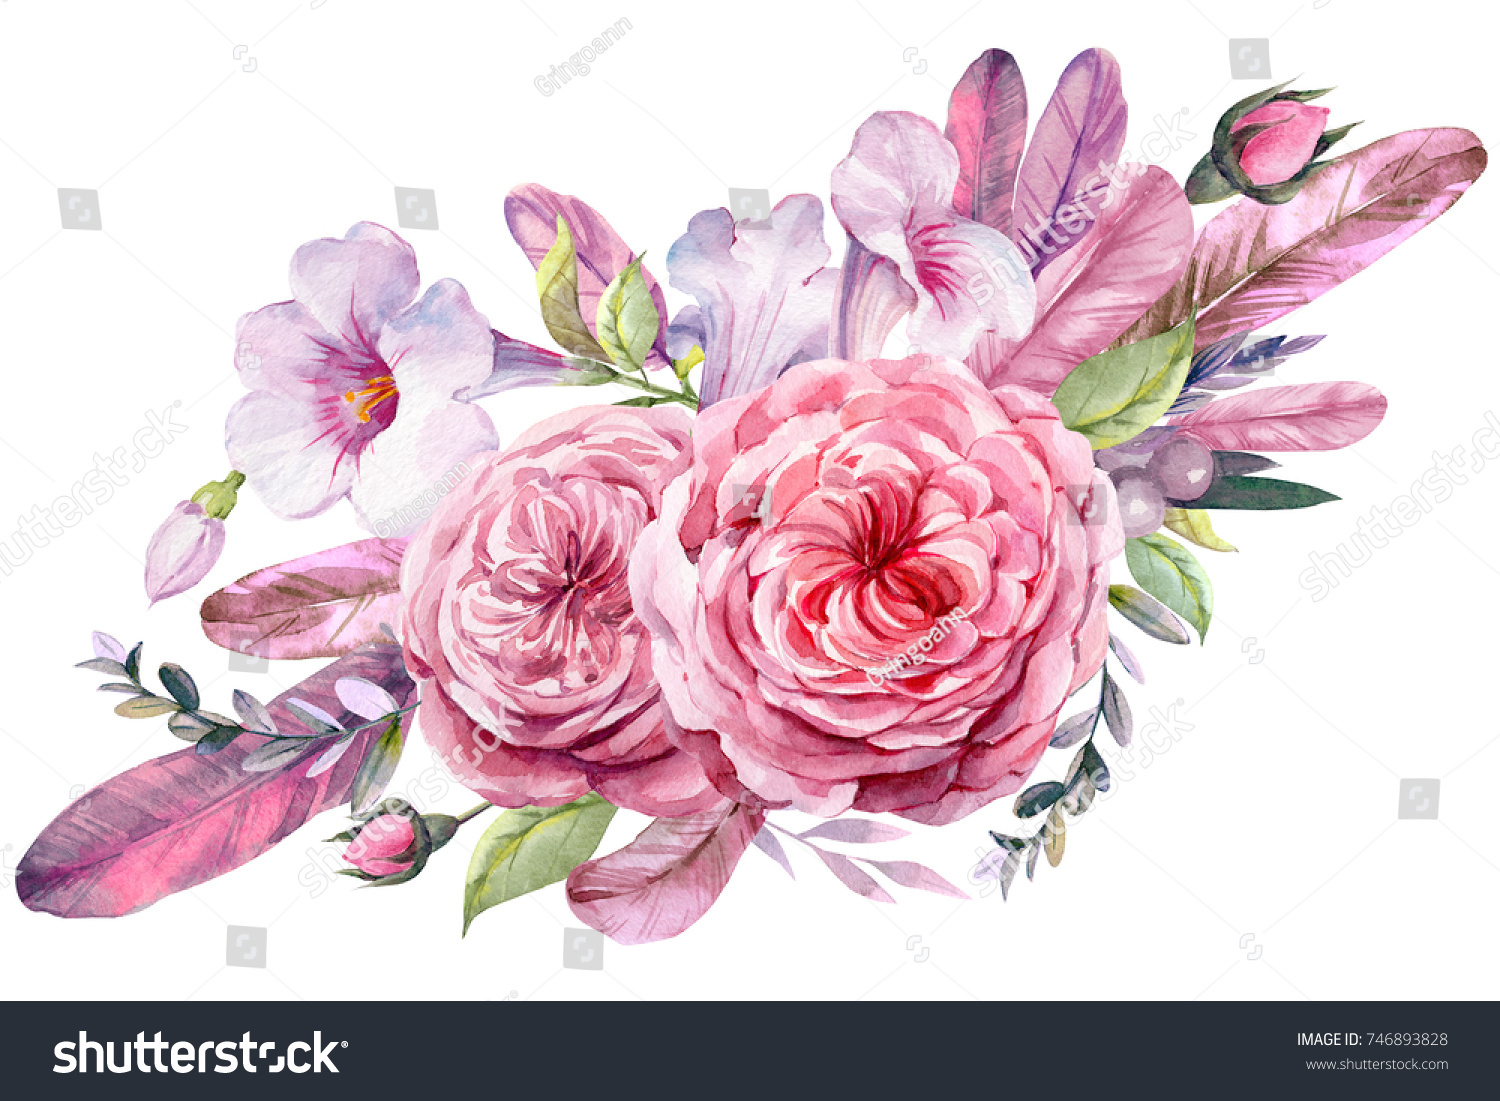 Wedding flowers bridal bouquet closeup bouquet stock illustration wedding flowers bridal bouquet closeup bouquet of roses feathers leaves illustration in izmirmasajfo